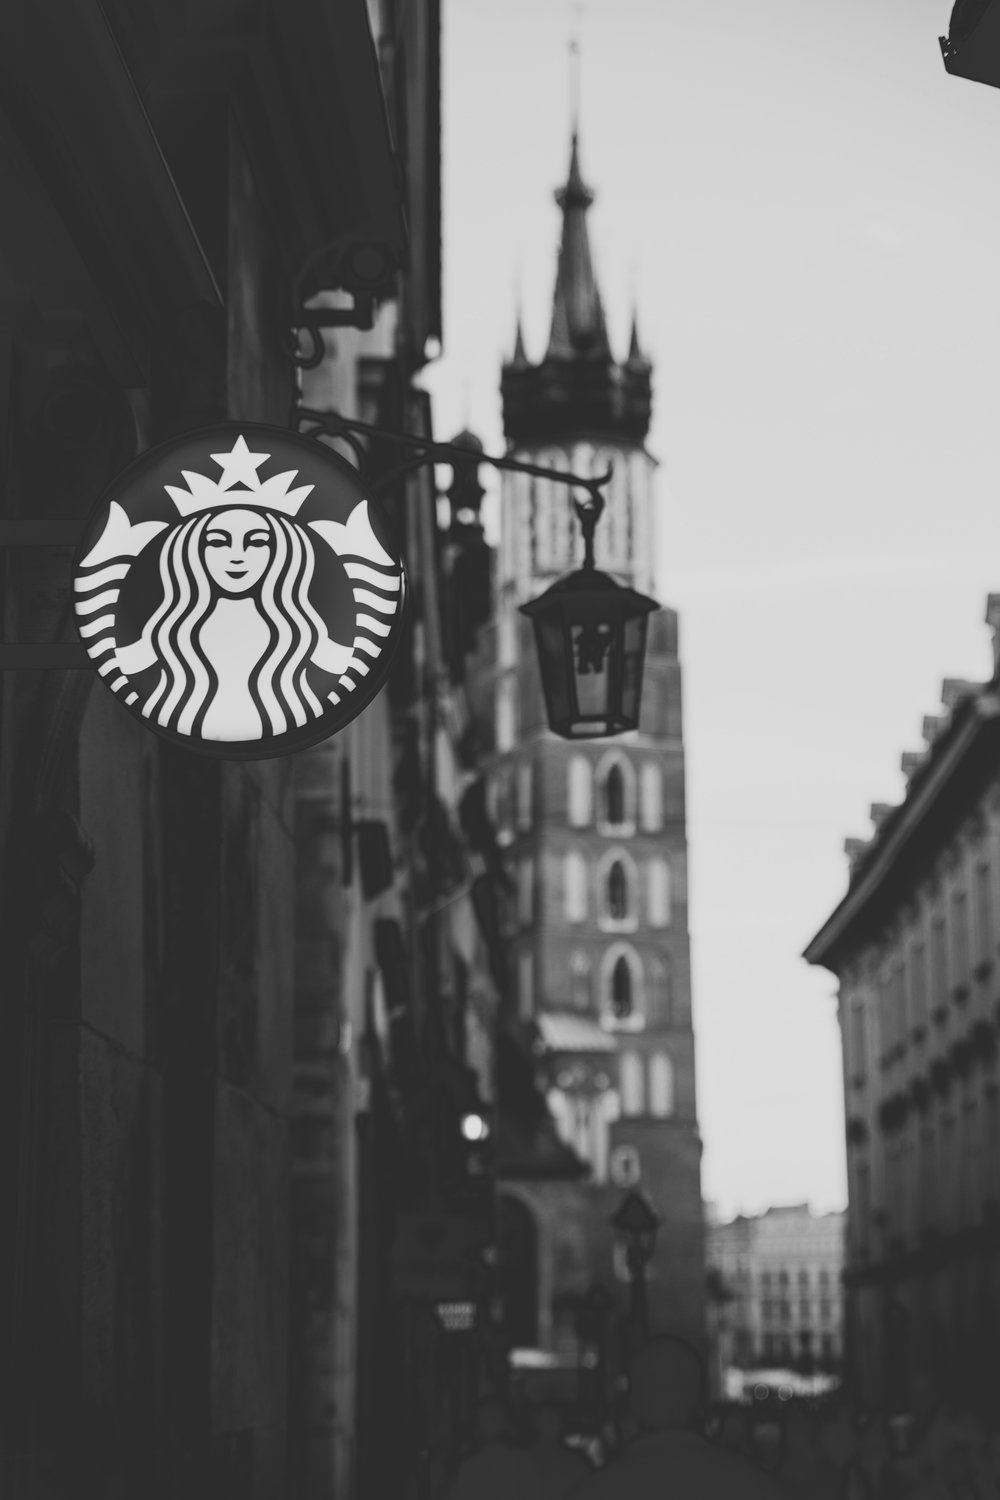 A Starbucks sign hangs in the foreground, with a medieval town out of focus behind